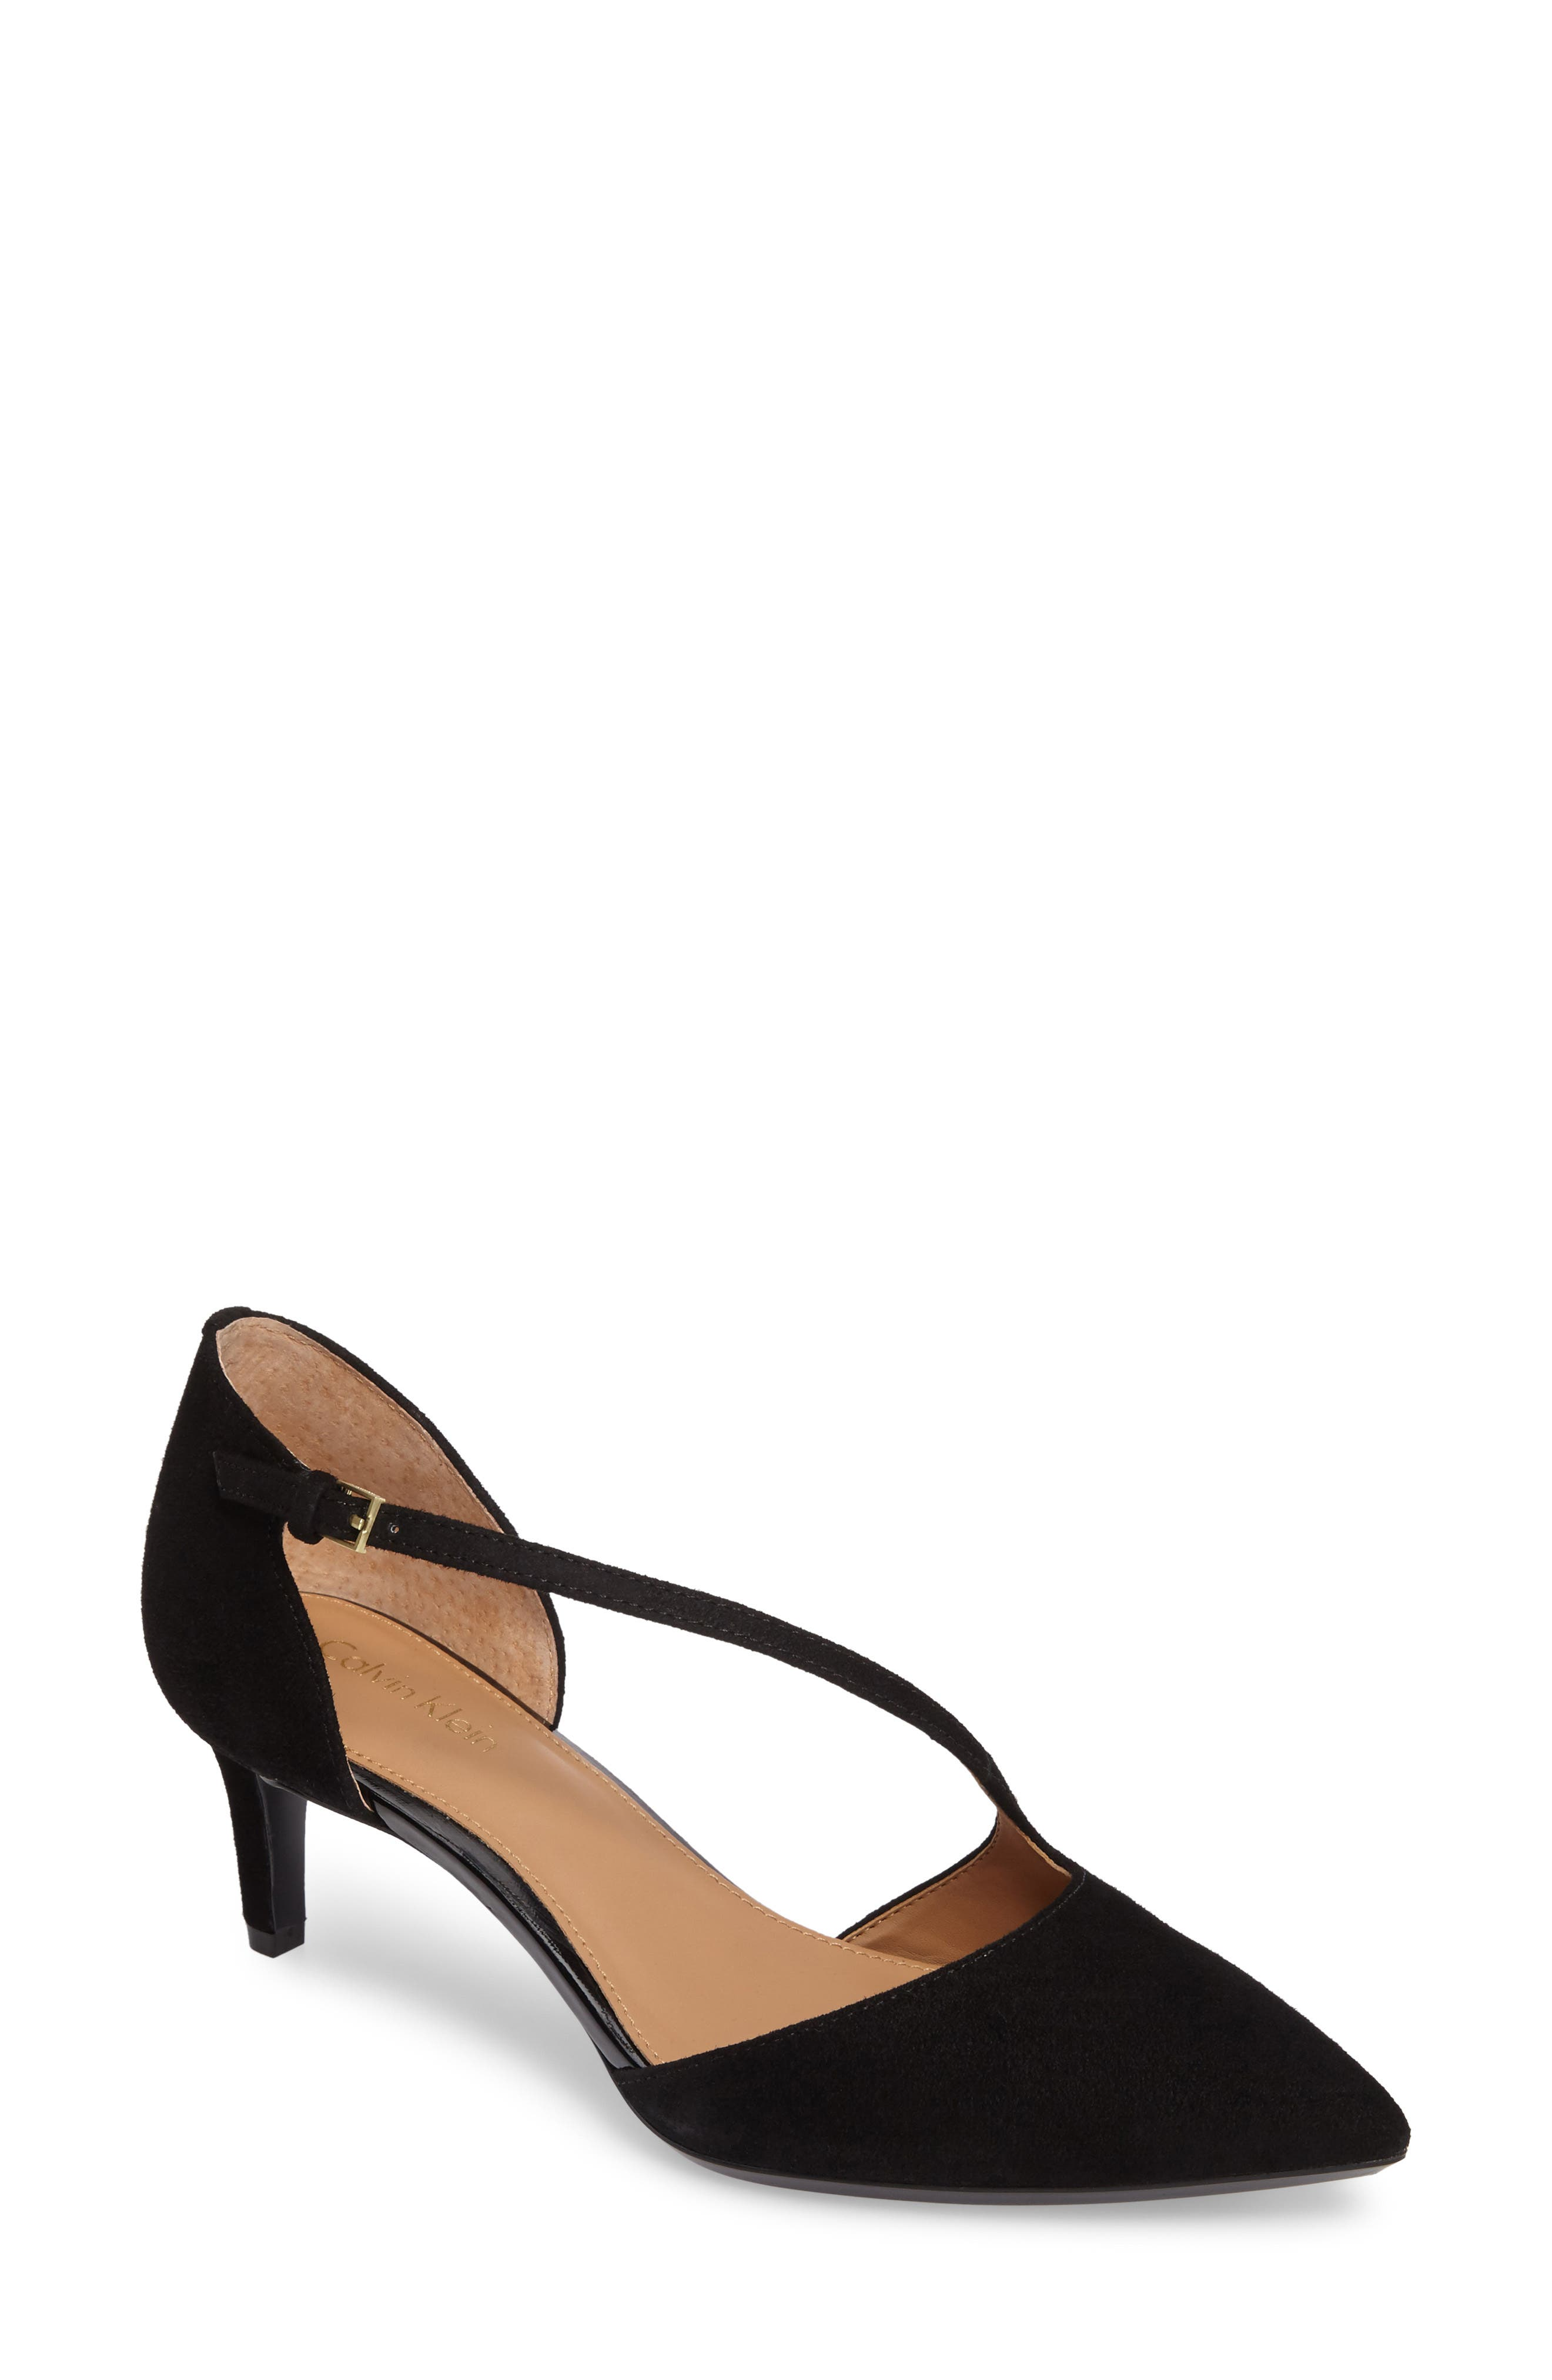 Page Pointy Toe Pump,                         Main,                         color, 001